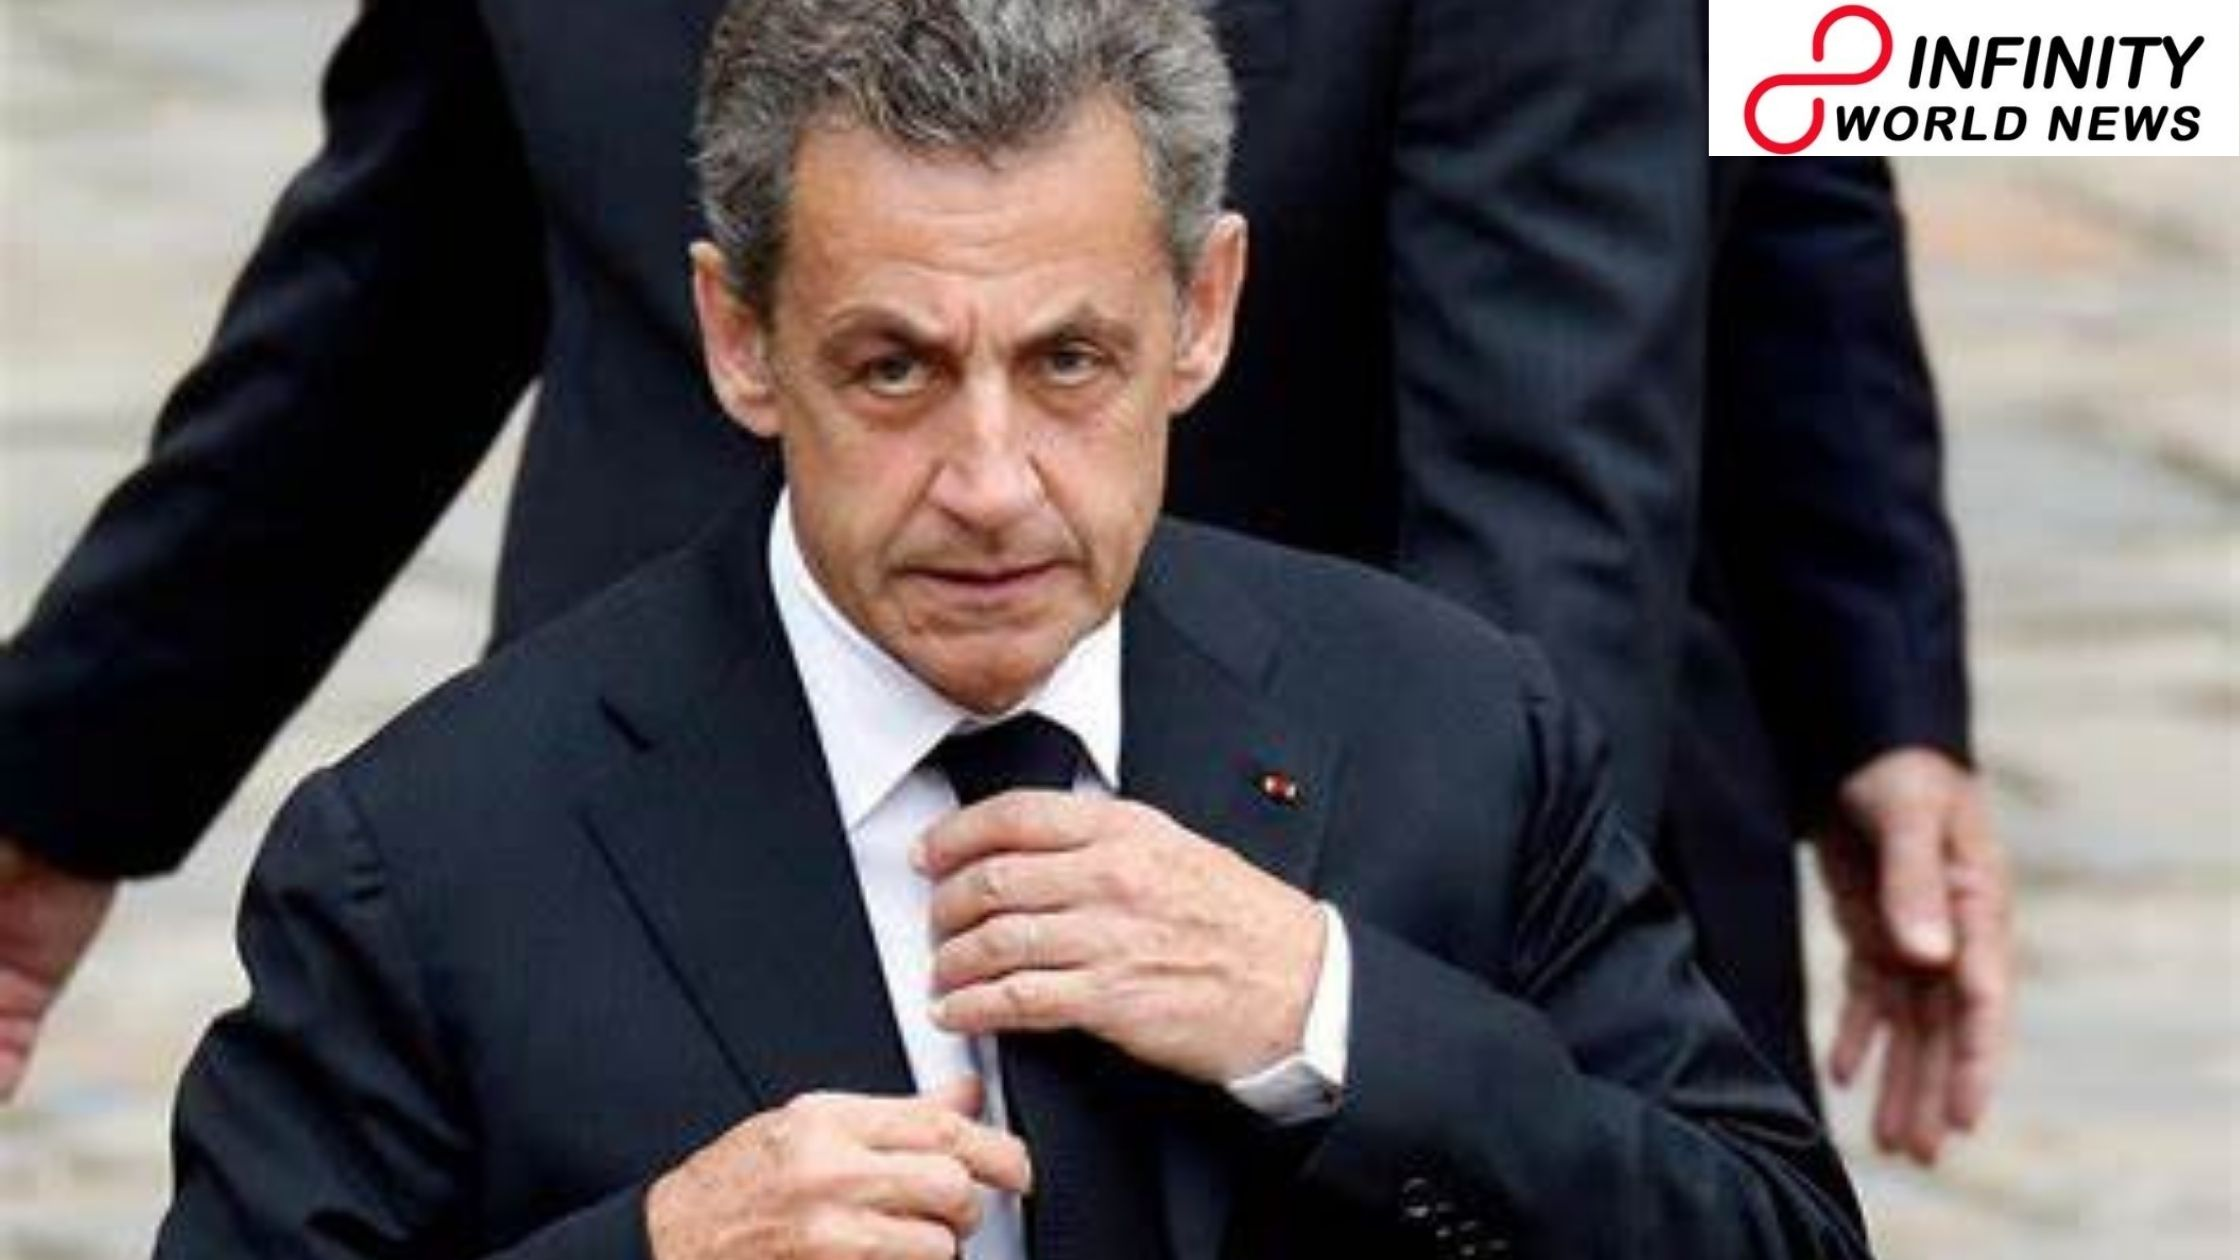 sarkozy - photo #2